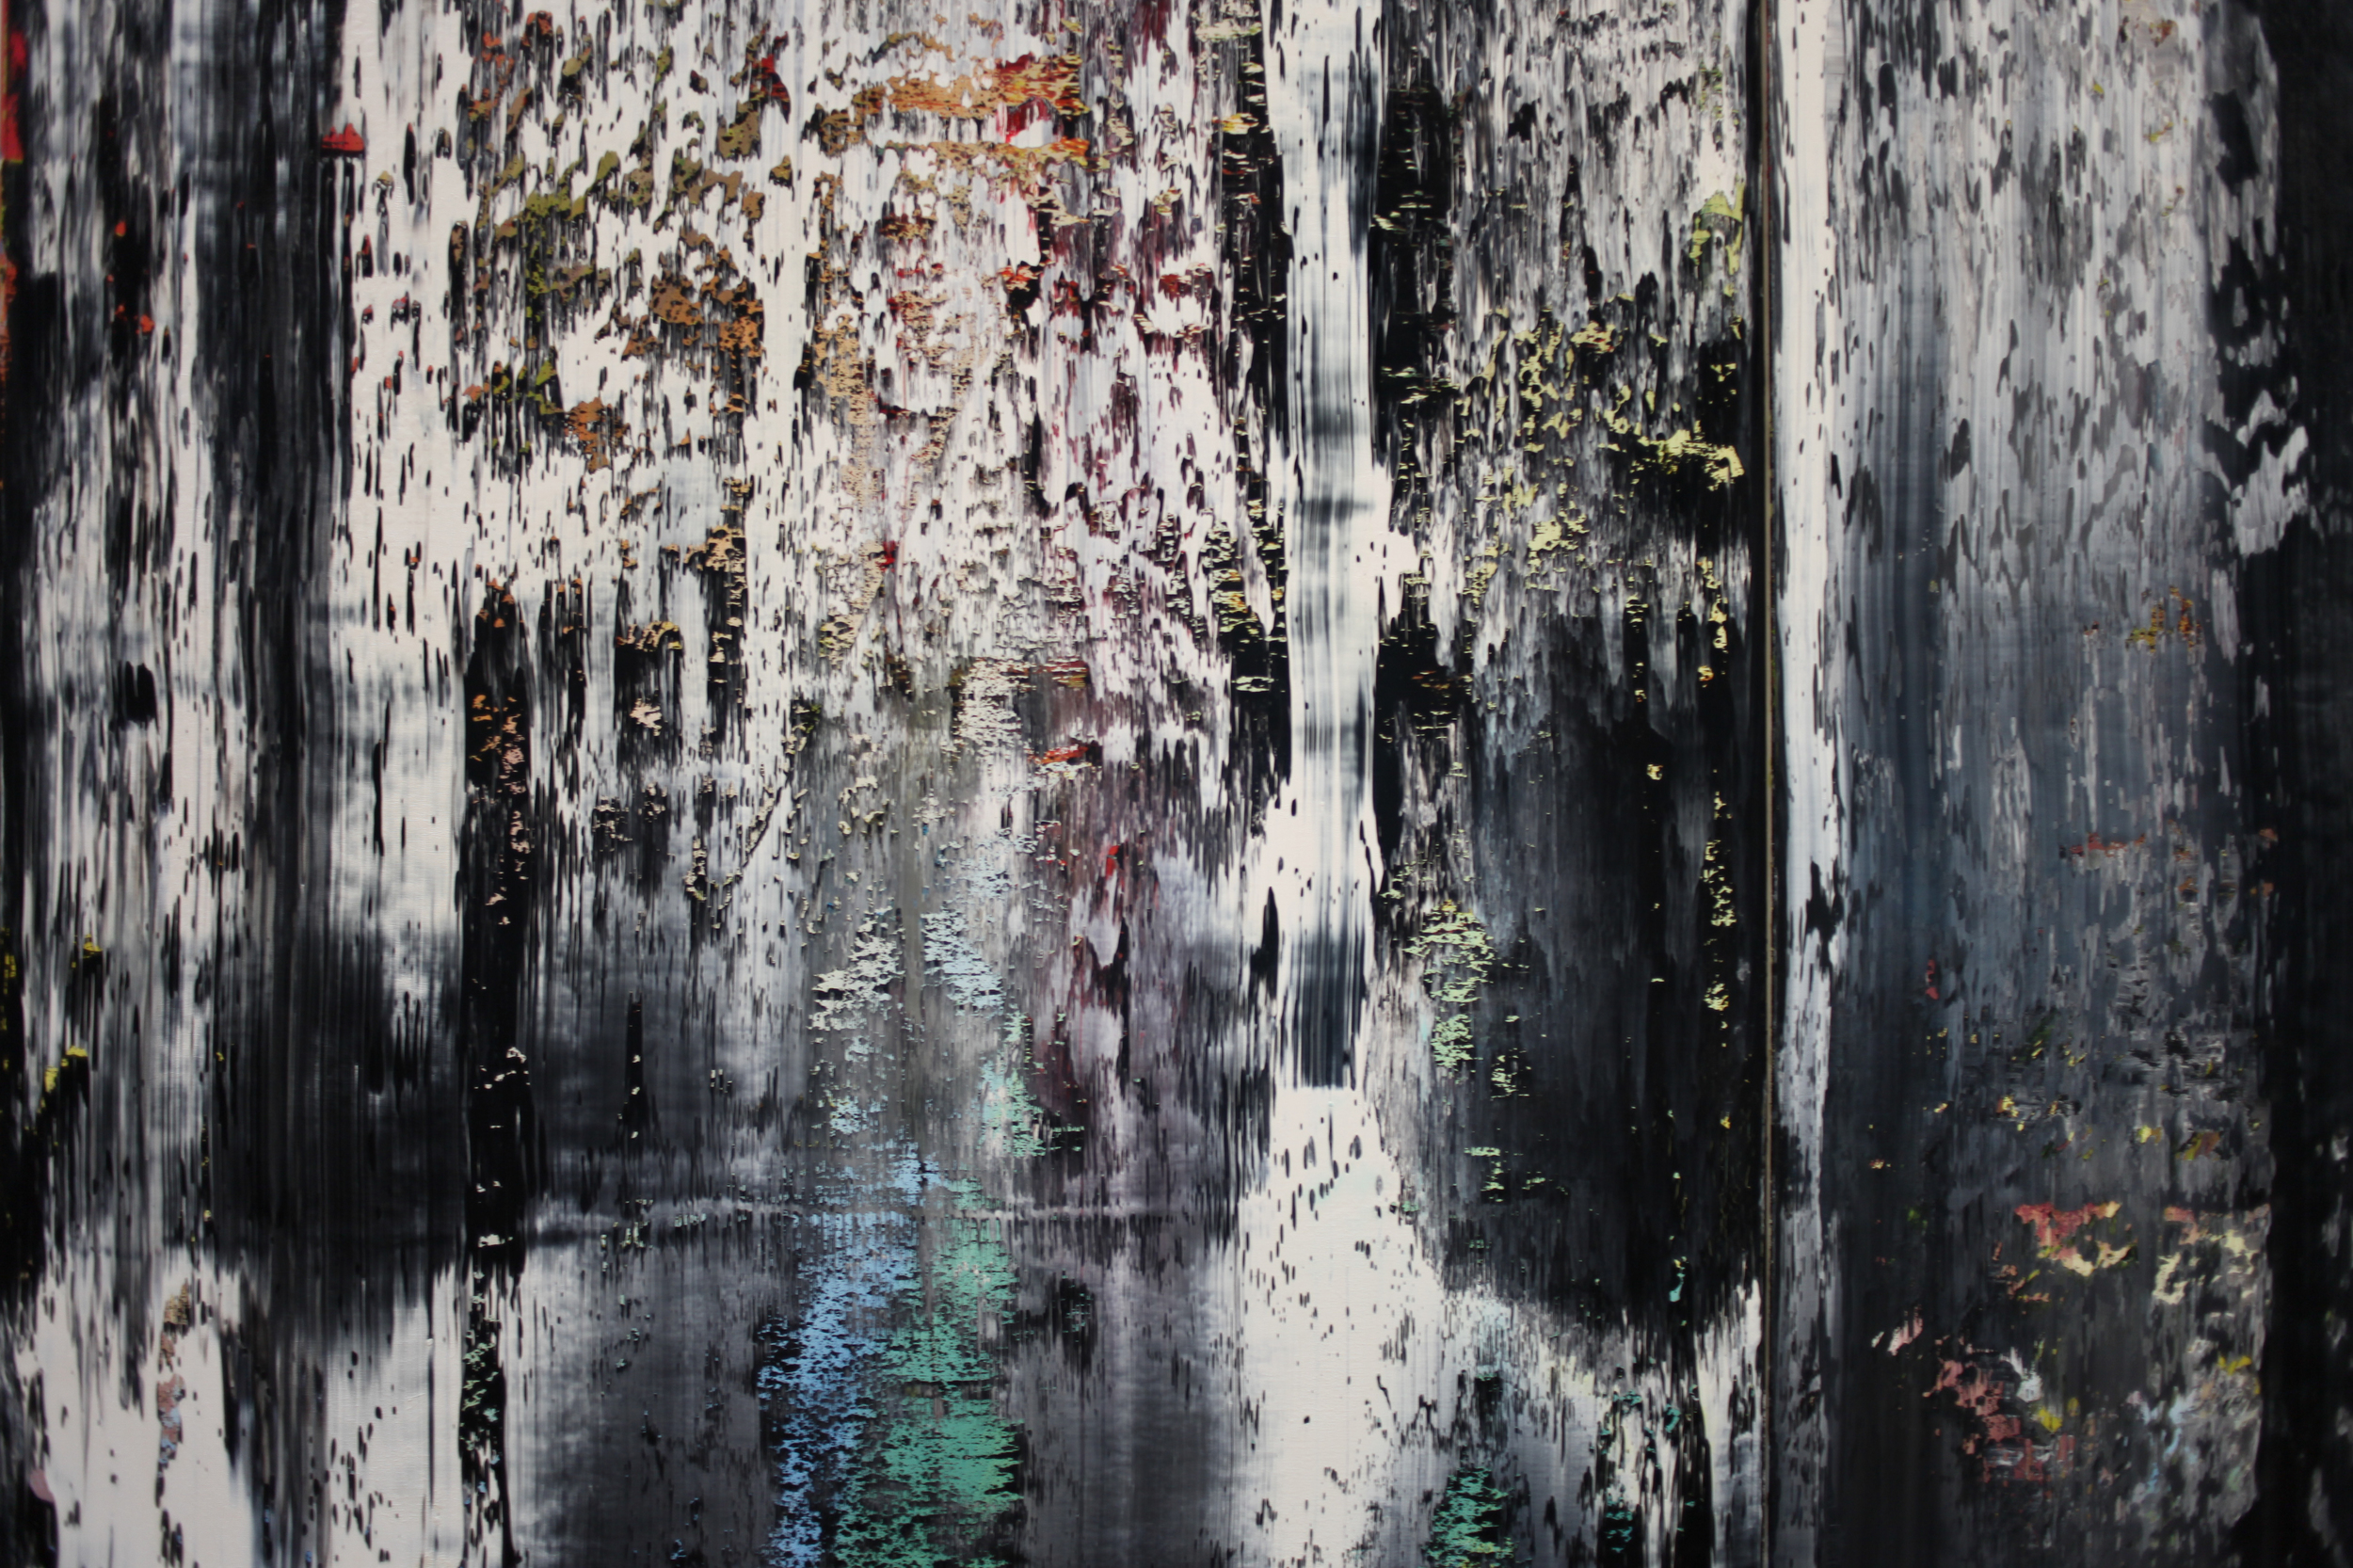 Gerhard Richter - January, December, November 1989